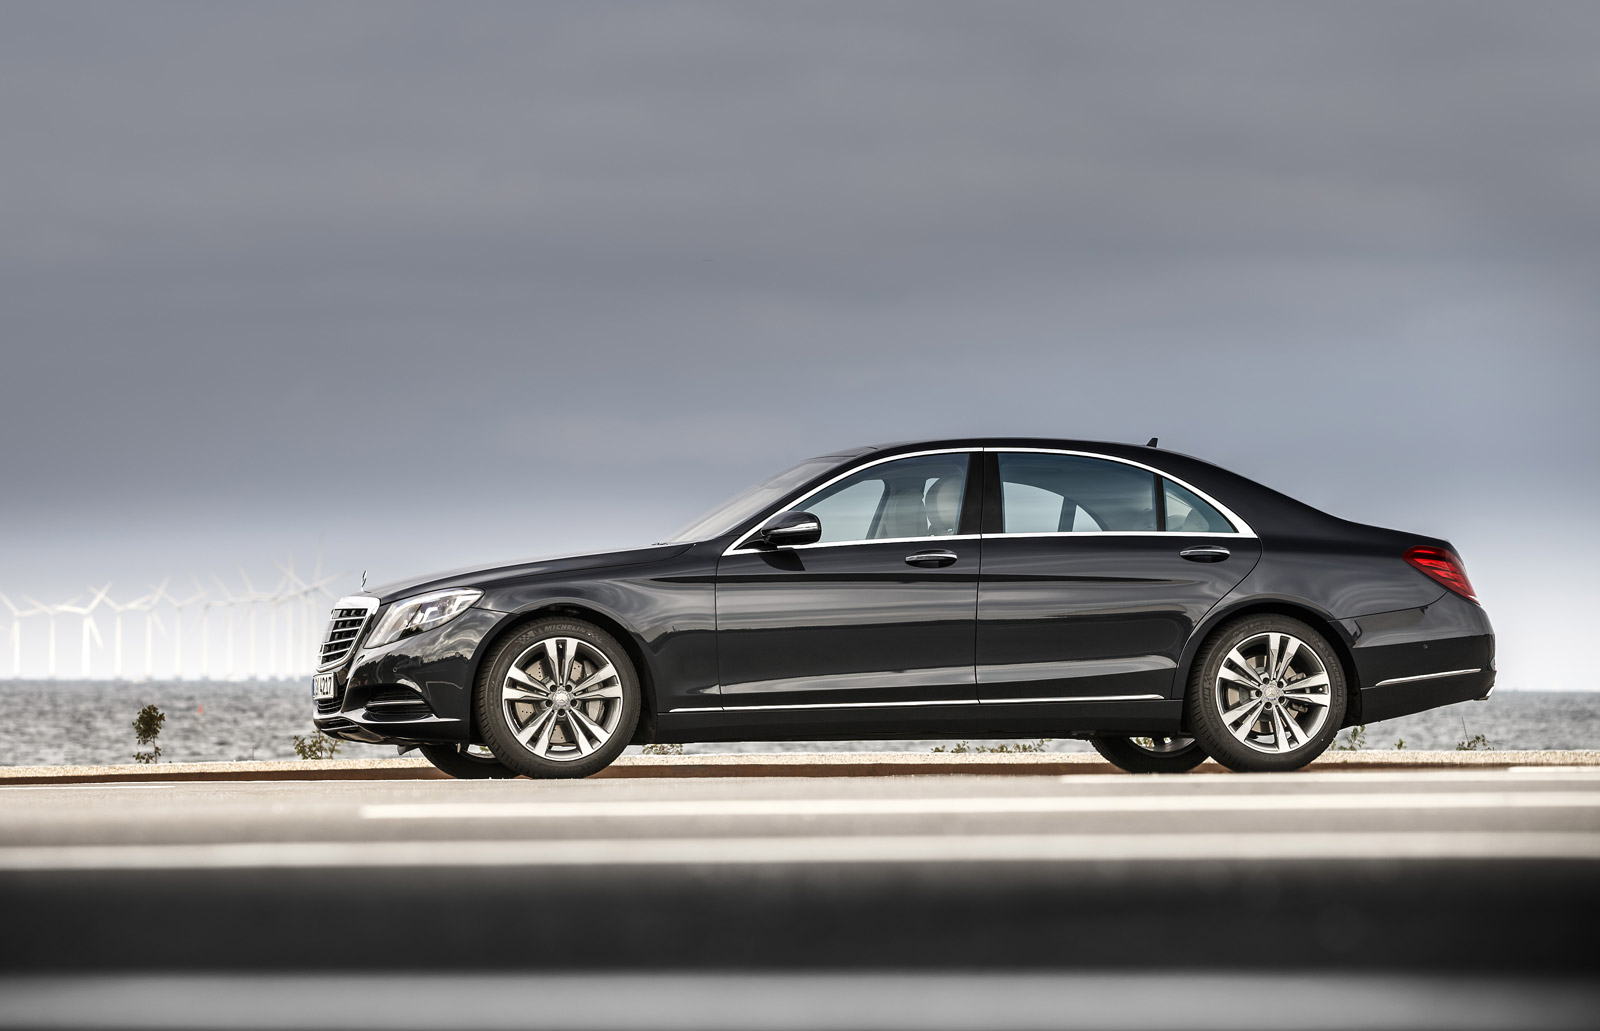 Bmw 7 series vs mercedes benz s class compare cars for Mercedes benz s series